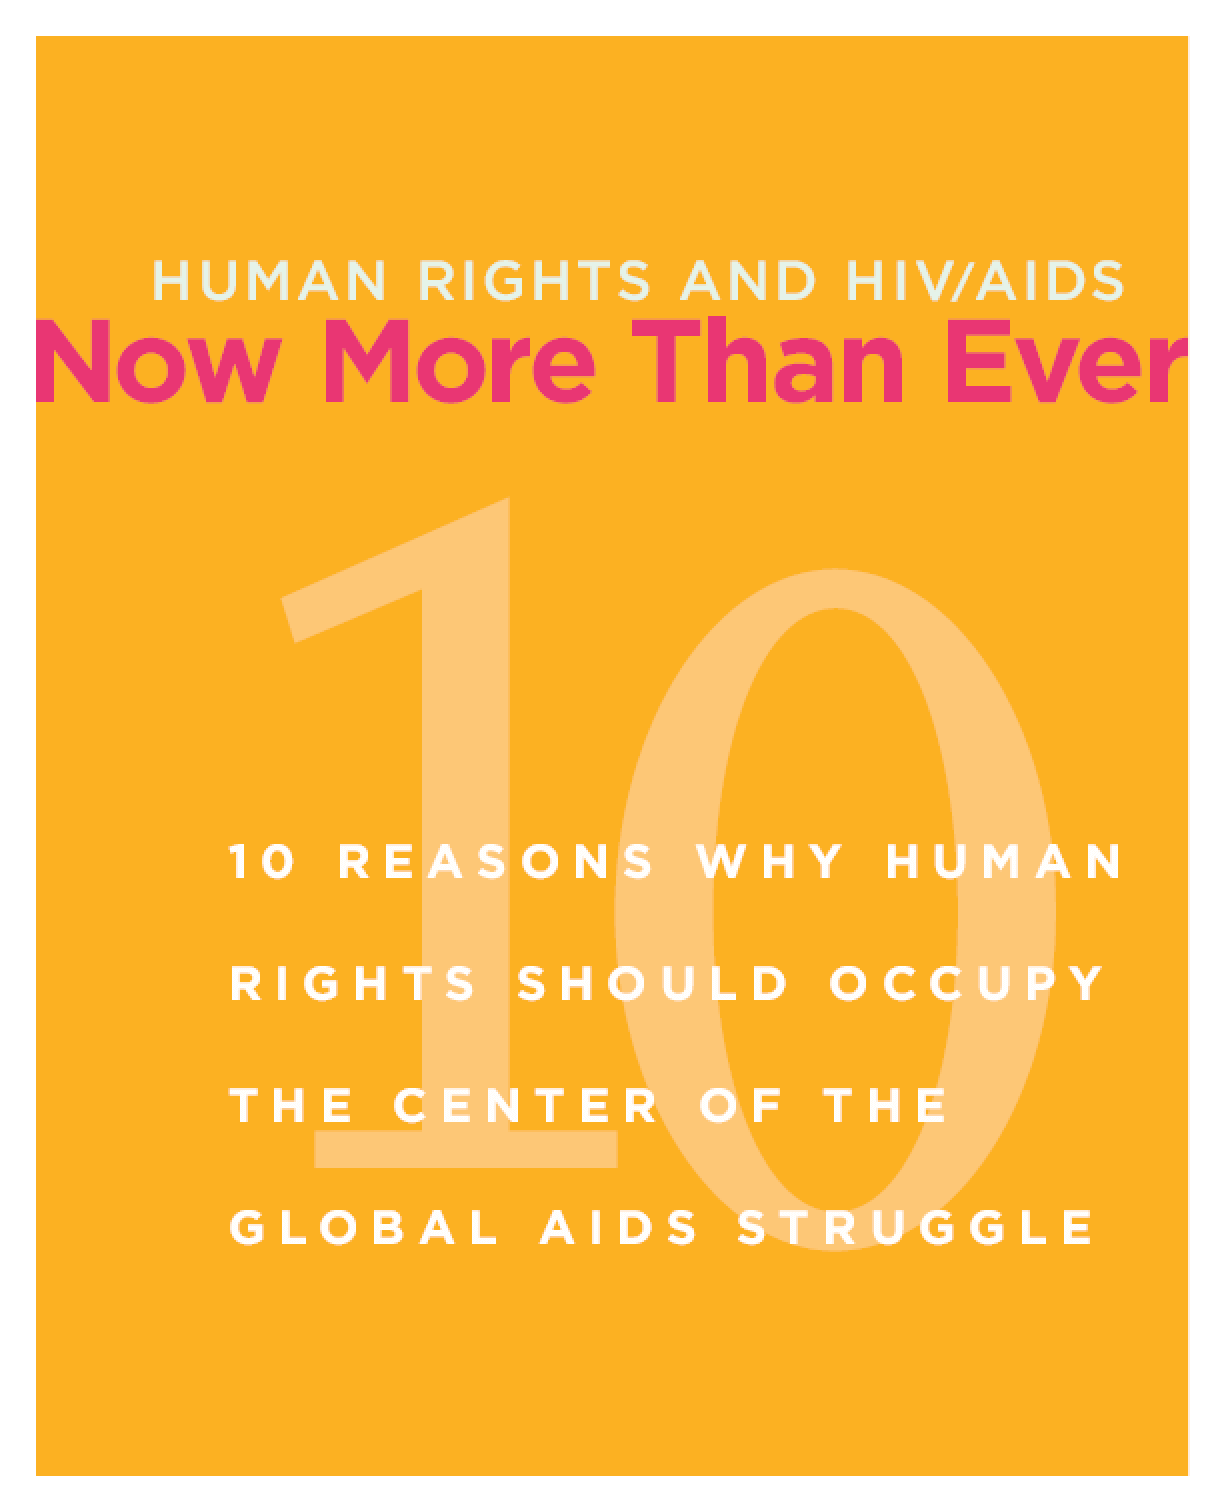 Human Rights and HIV/AIDS: Now More Than Ever: 10 Reasons Why Human Rights Should Occupy the Center of the Global AIDS Struggle